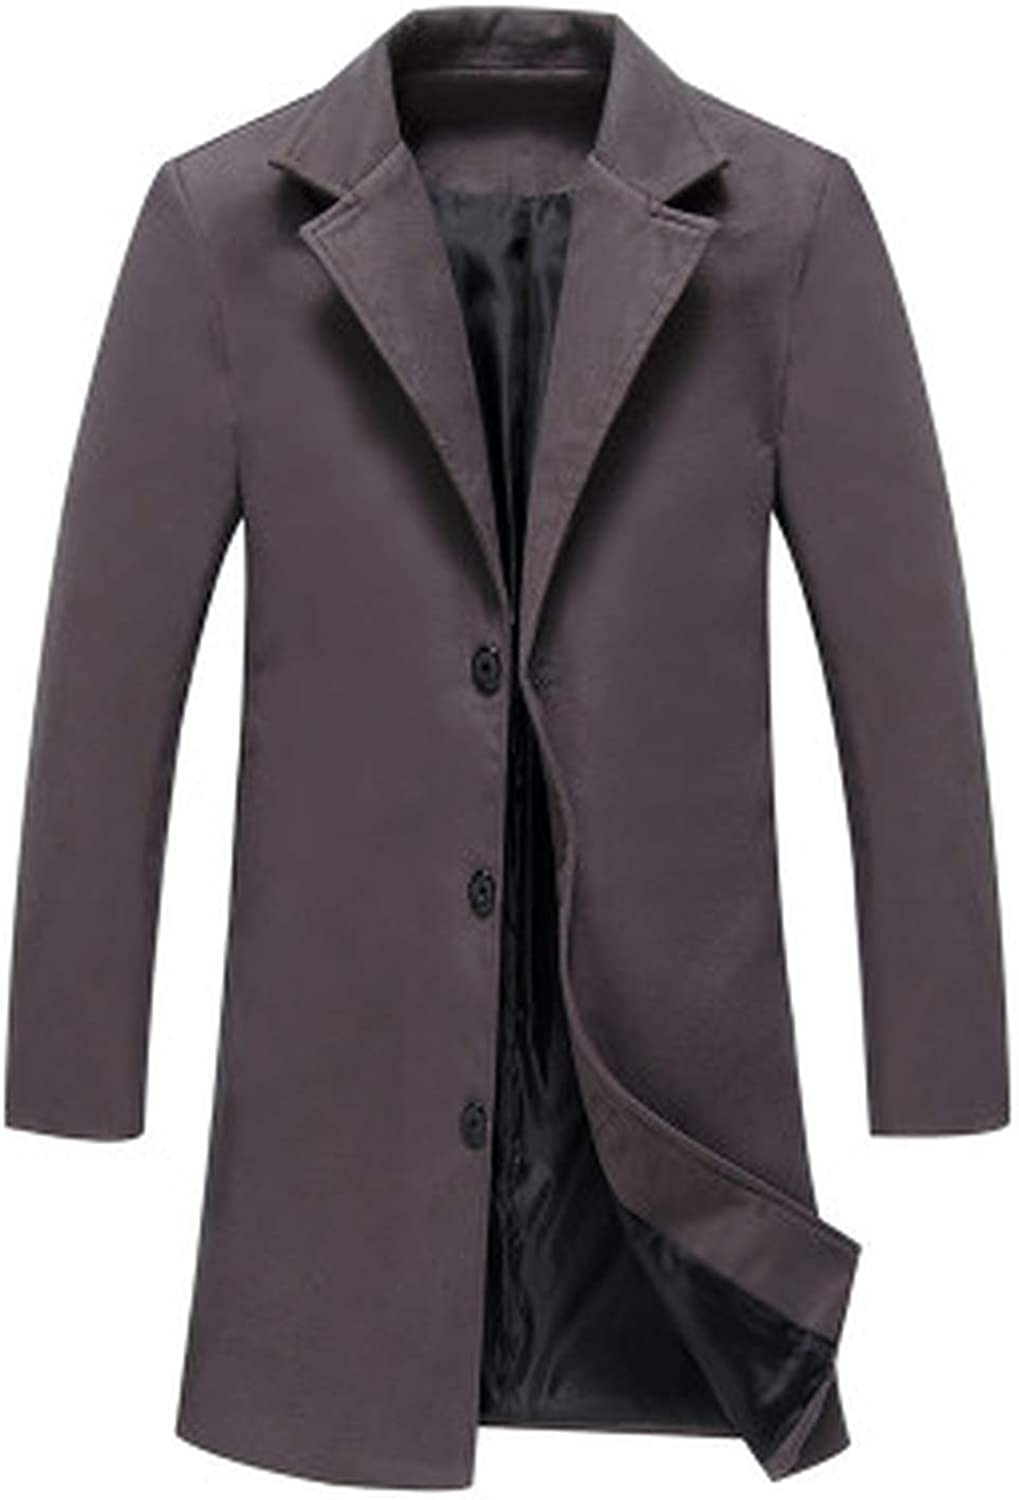 Wool Blend Jacket Trench Coat Men/'s Slim Fit Double Breasted Heavy Elegant New